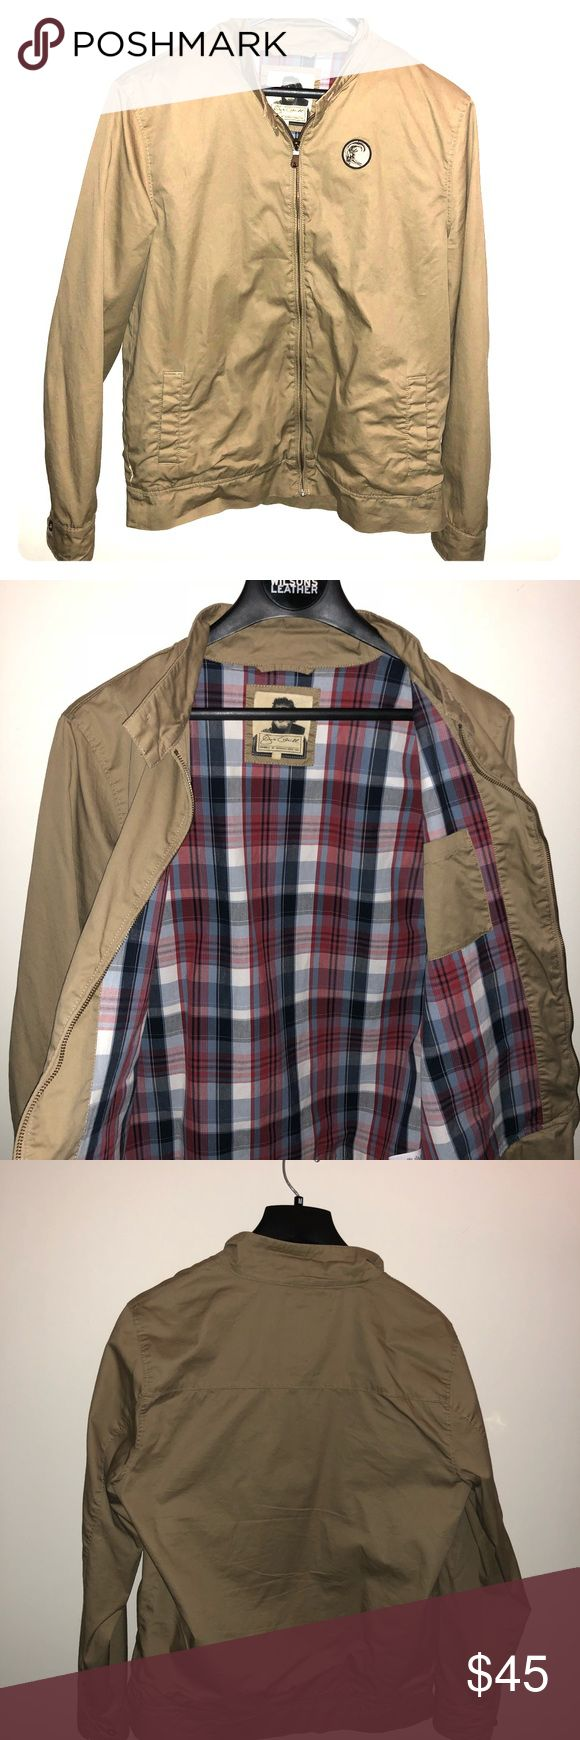 O'Neill Brown Jacket Comfy & Light O'Neill Jacket. Perfect for cooler weather and layers underneath. In great condition. Size Large O'Neill Jackets & Coats